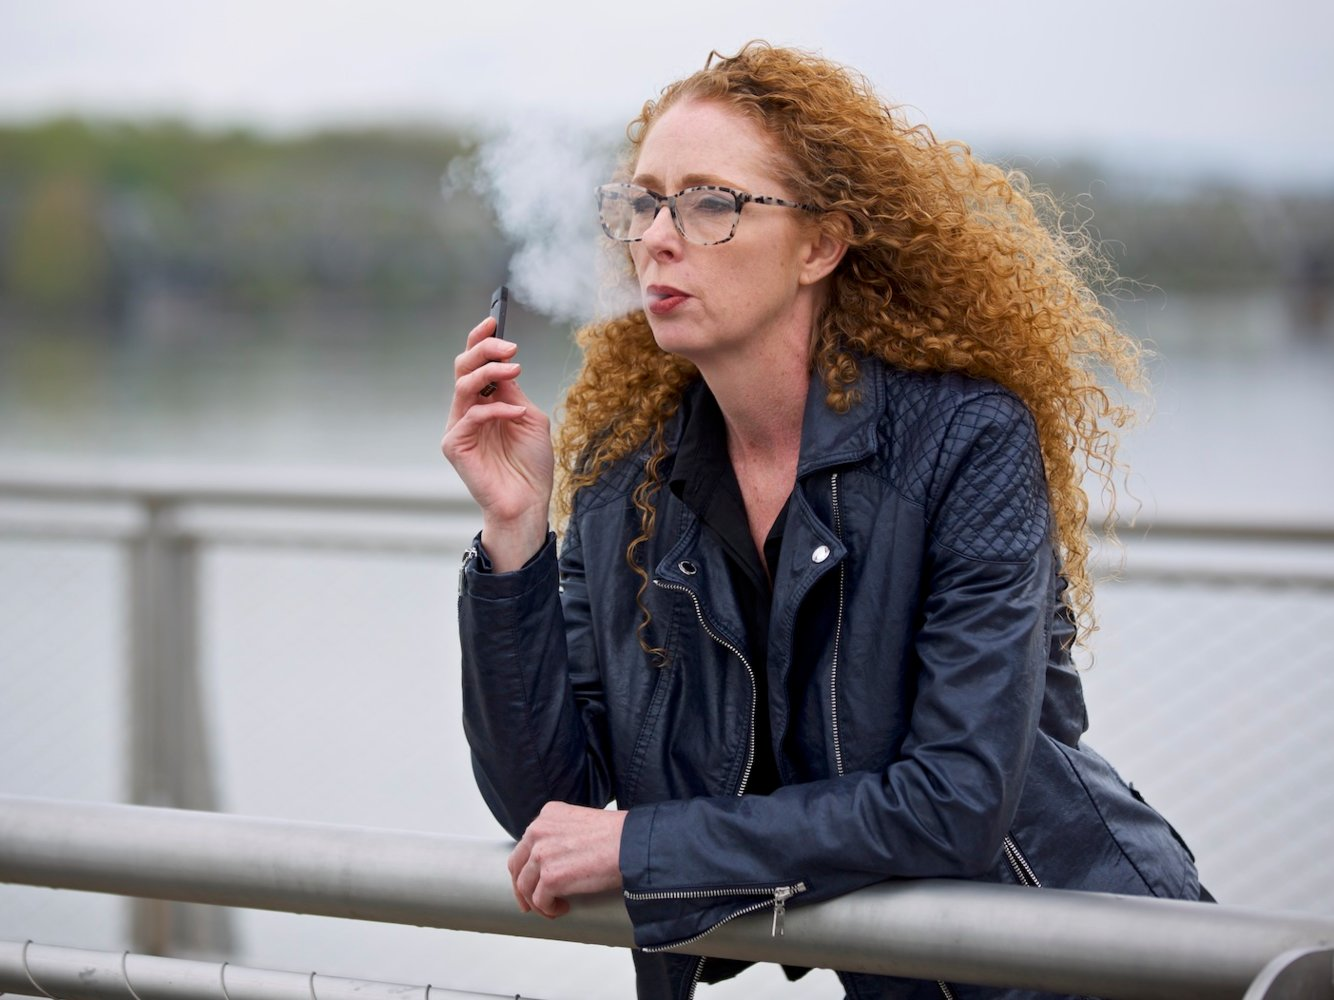 Officials just confirmed 6 deaths and 380 cases of serious lung disease tied to vaping. Here are all the health risks you should know about.